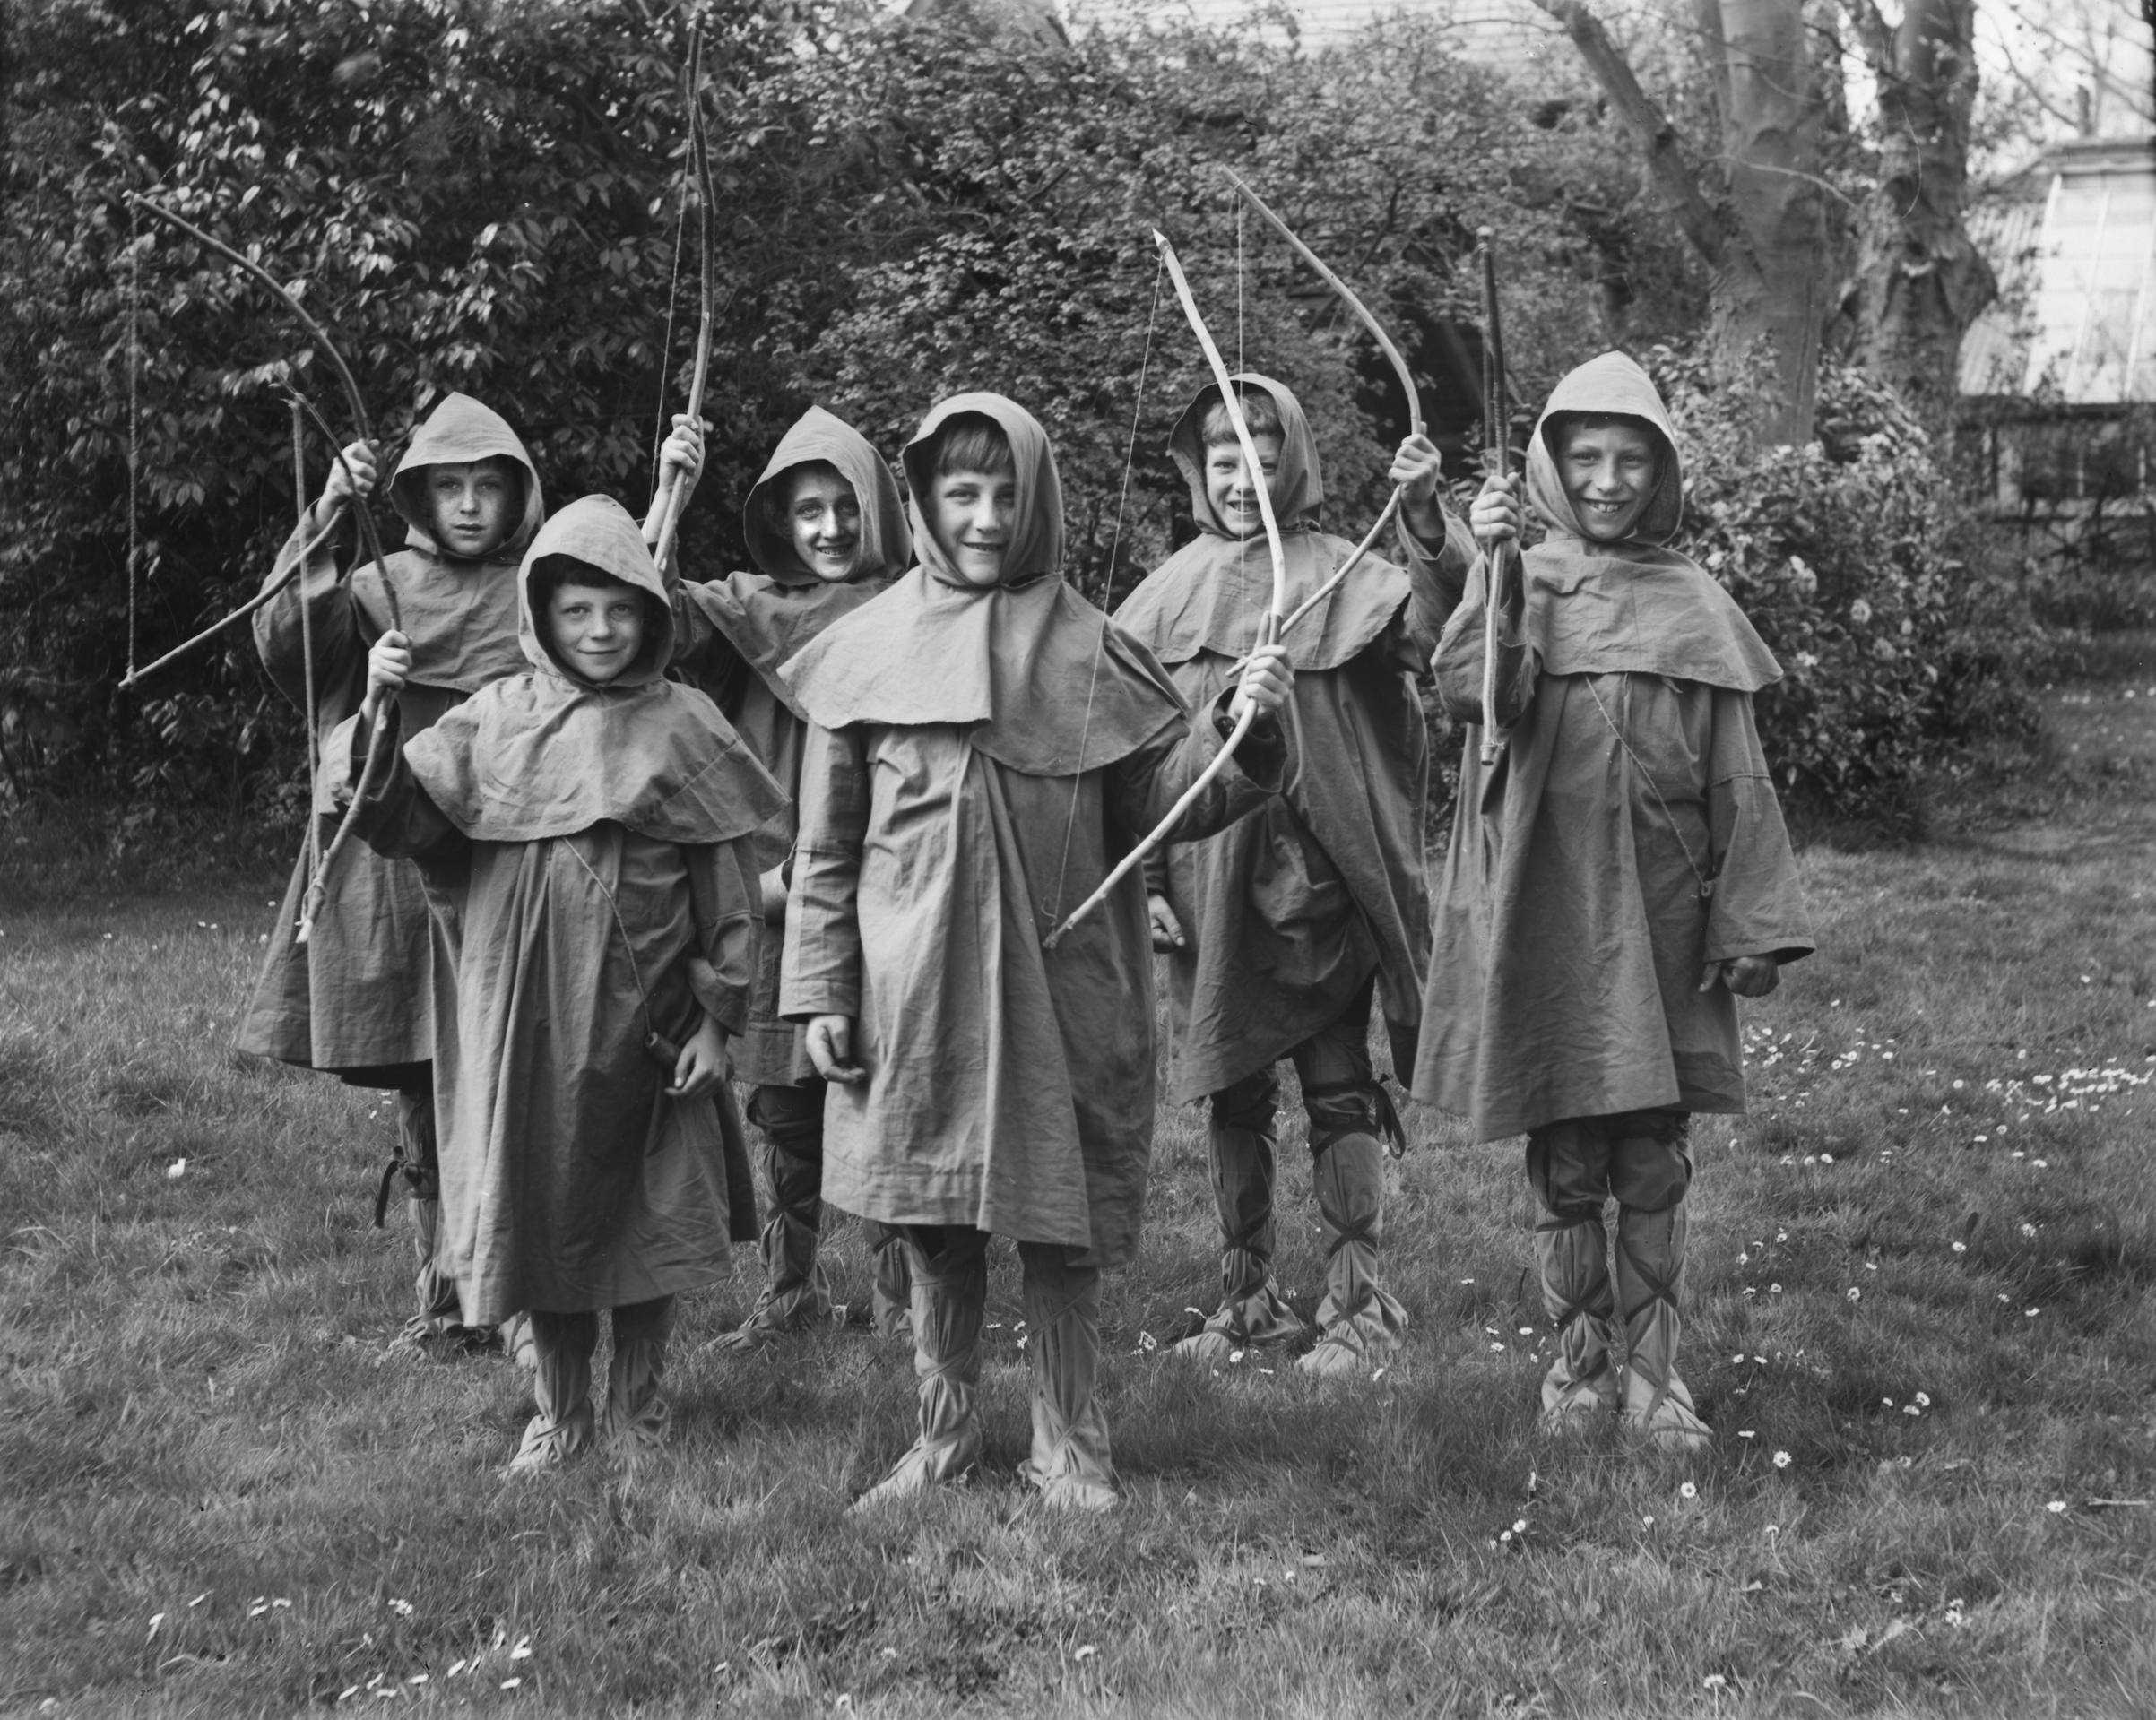 A group of school boys dressed as Robin Hood hold up their bows, U.K. ca. 1920.